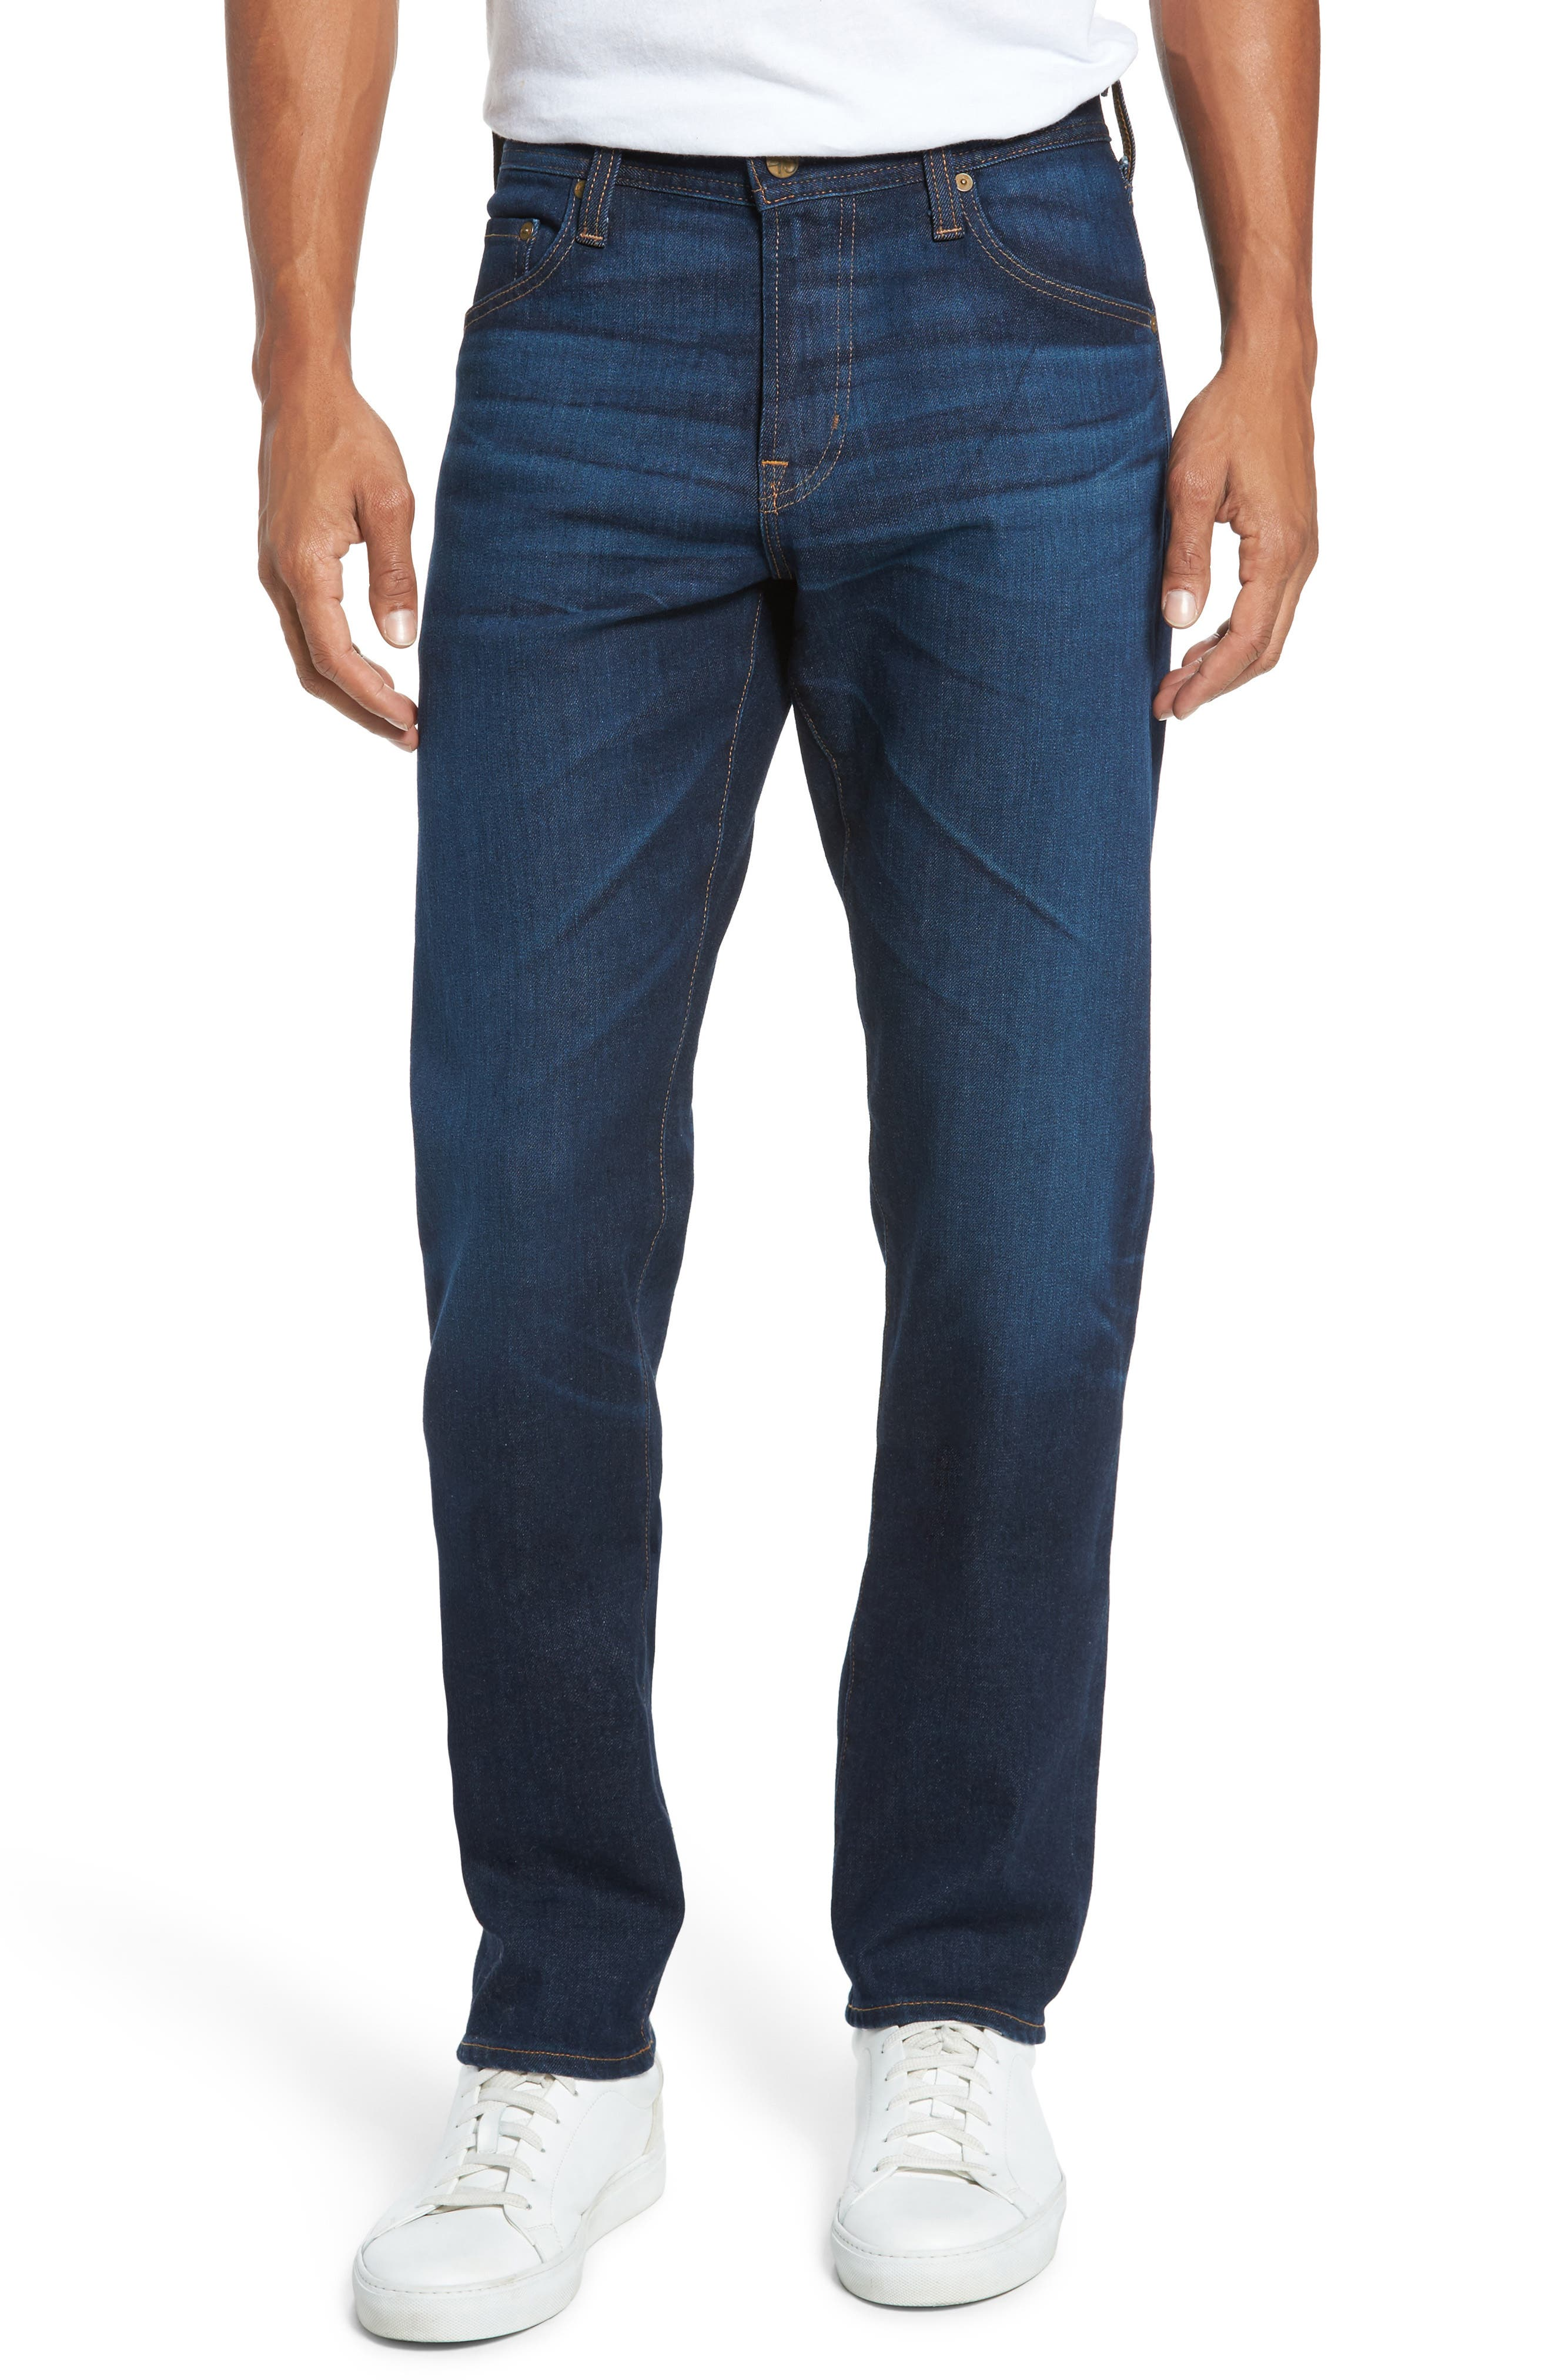 Graduate Slim Straight Fit Jeans,                             Main thumbnail 1, color,                             5 Years Porter